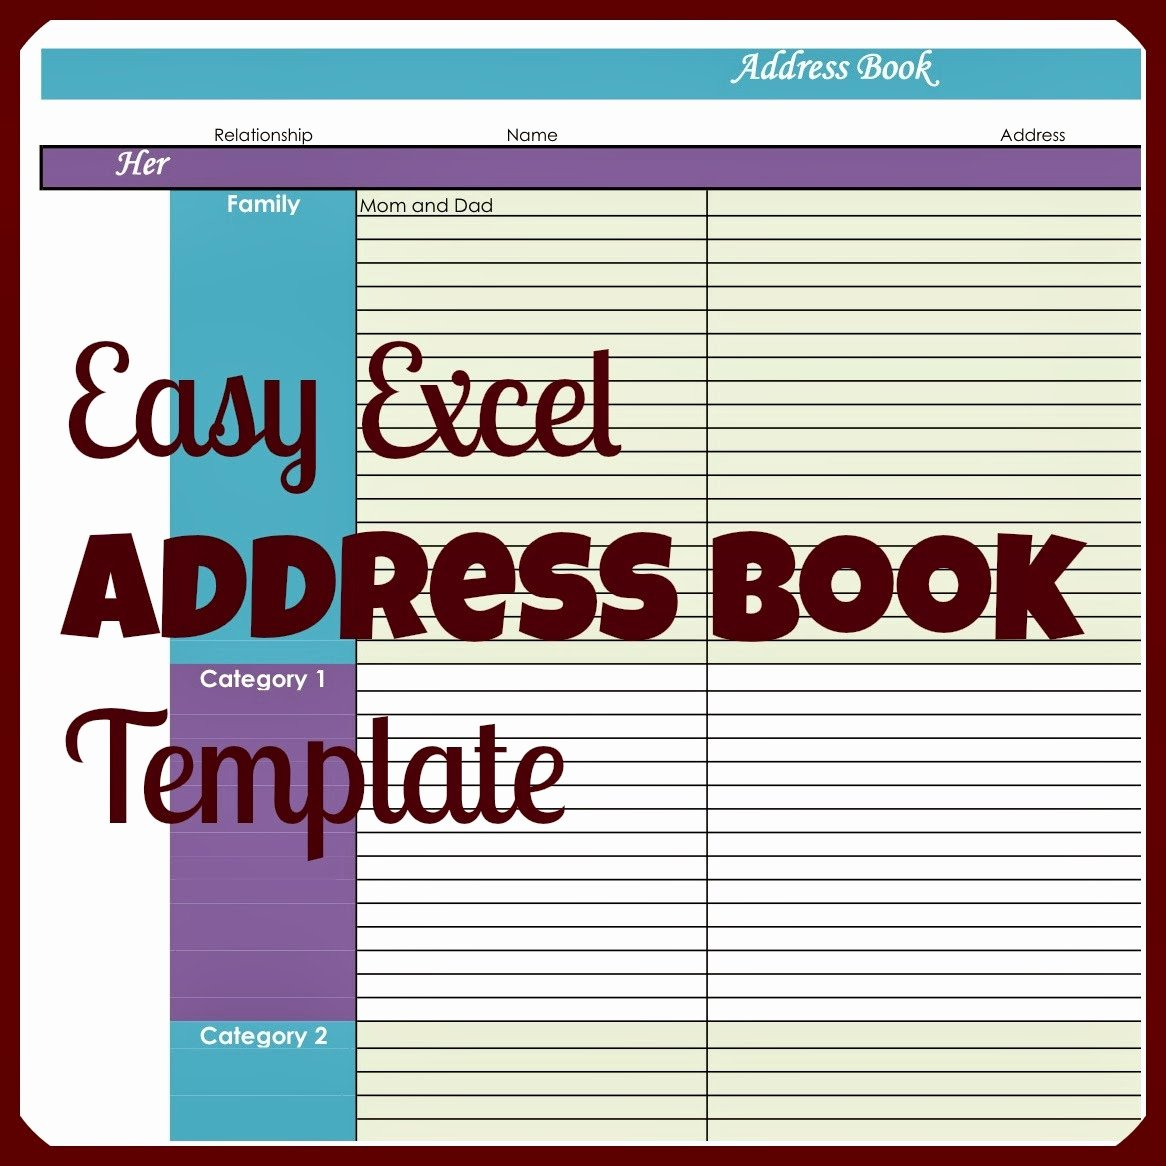 Excel Address Book Template Awesome Laura S Plans Easy Excel Address Book Template